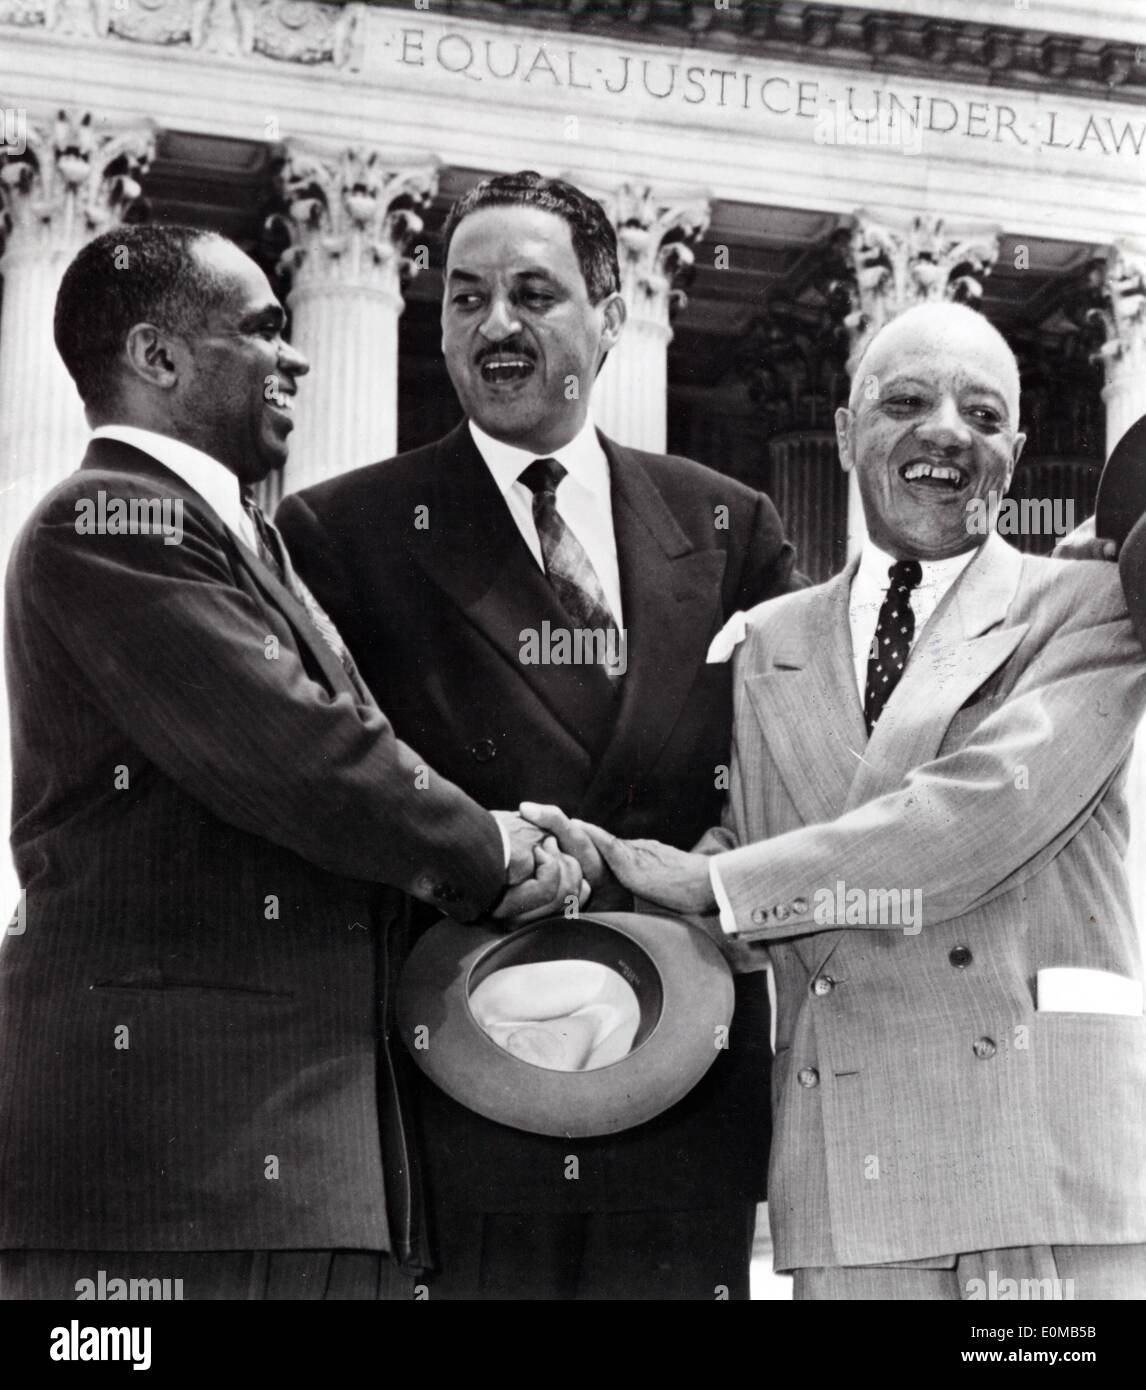 May 17, 1954 - Washington , District of Columbia, U.S. - Half a century after the historic ruling in Brown v. Board of Education that overturned segregated education, the US is marking 50 years of racial school integration. In 1954, THURGOOD MARSHALL (C) and fellow attorneys GEORGE E.C.HAYES (L) and JAMES M. NABRIT rejoice outside the Supreme Court after the winning decision ruling out school segregation in Brown vs. Board of Education. - Stock Image